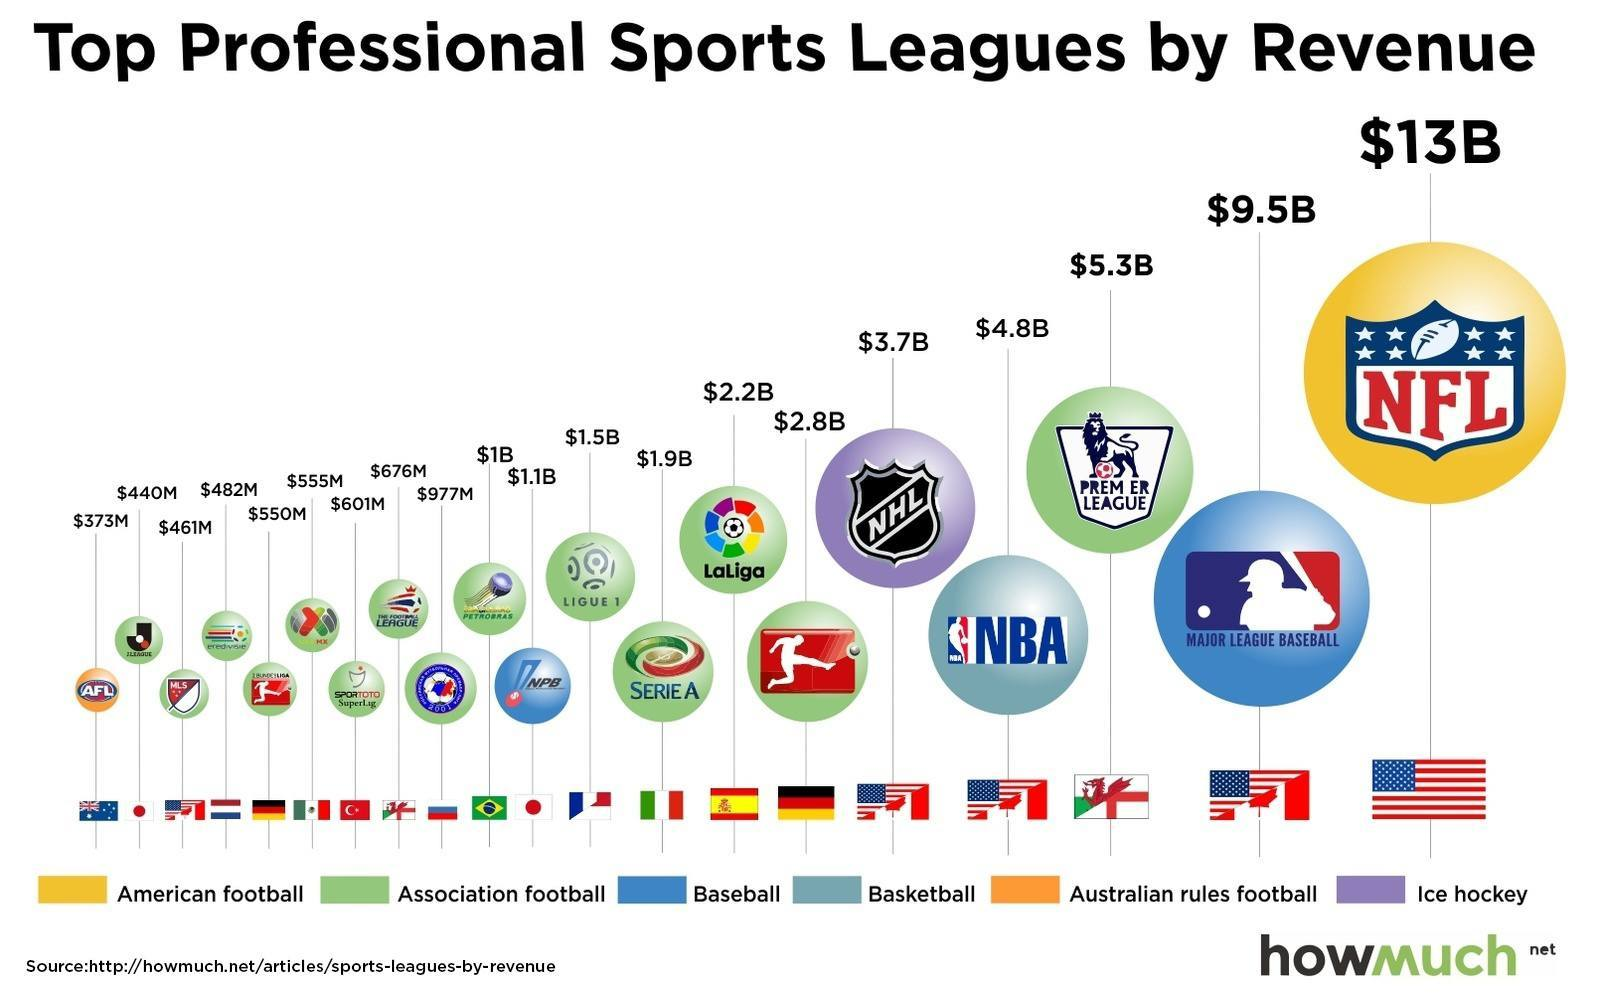 NFL - Professional Sports League By Revenue